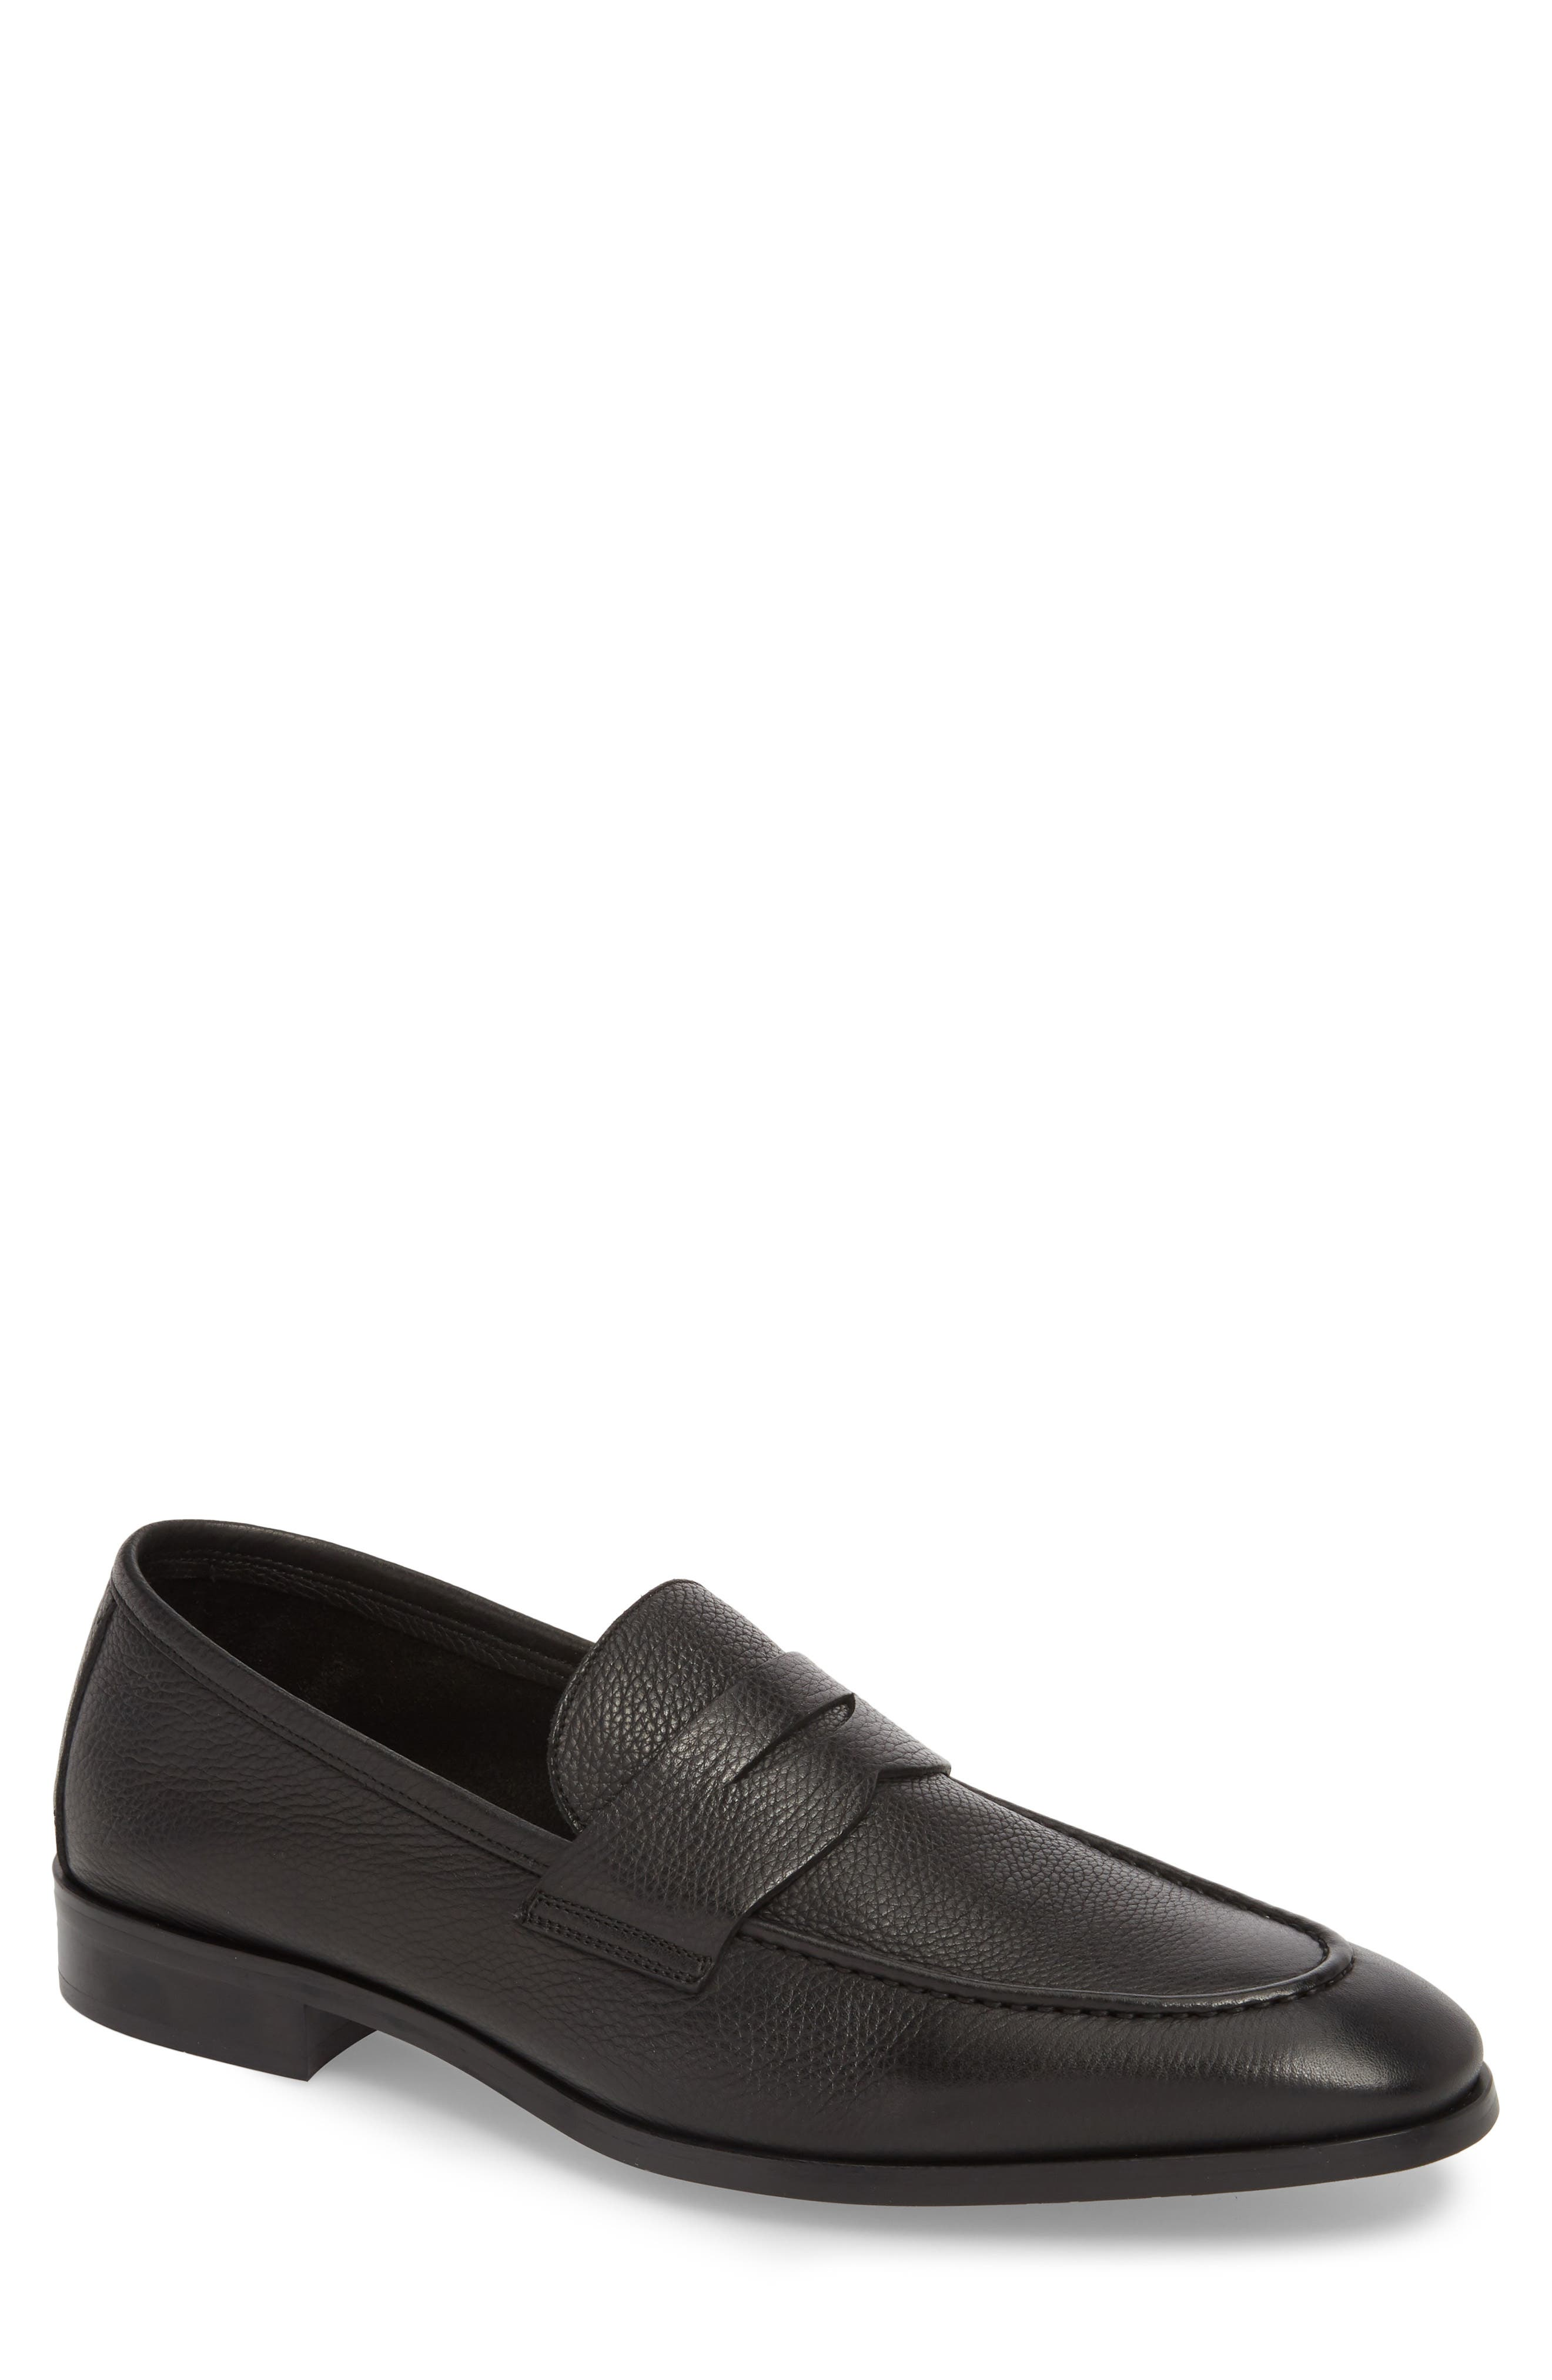 TO BOOT NEW YORK,                             Johnson Penny Loafer,                             Main thumbnail 1, color,                             BLACK PEBBLED LEATHER